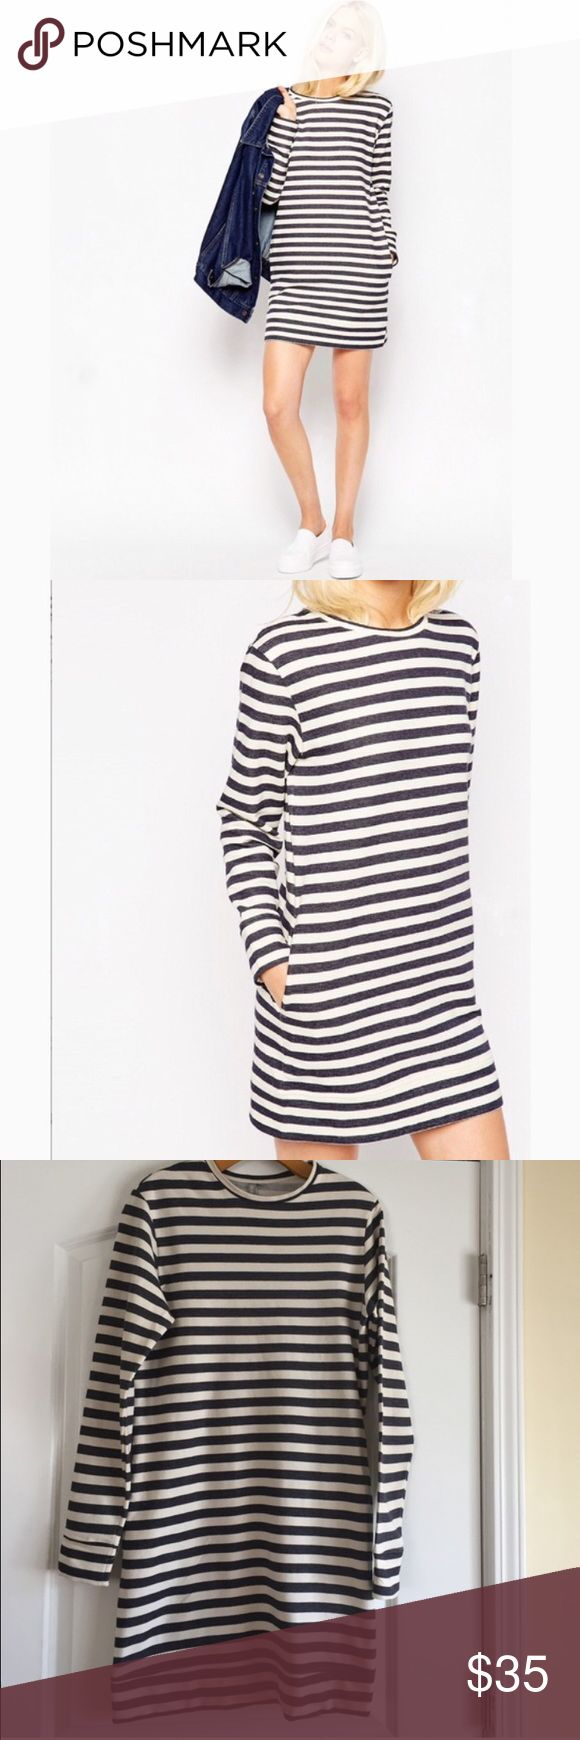 """ASOS Striped Long Sleeve Dress with Pockets Blue and white long sleeve striped dress. Lined with fleece so very warm and comfy. Shift dress cut. Two side pockets Length is 36 1/2"""" Bust is 38"""" Size is a U.S. 2 Brand New still in package. ASOS Dresses Long Sleeve"""